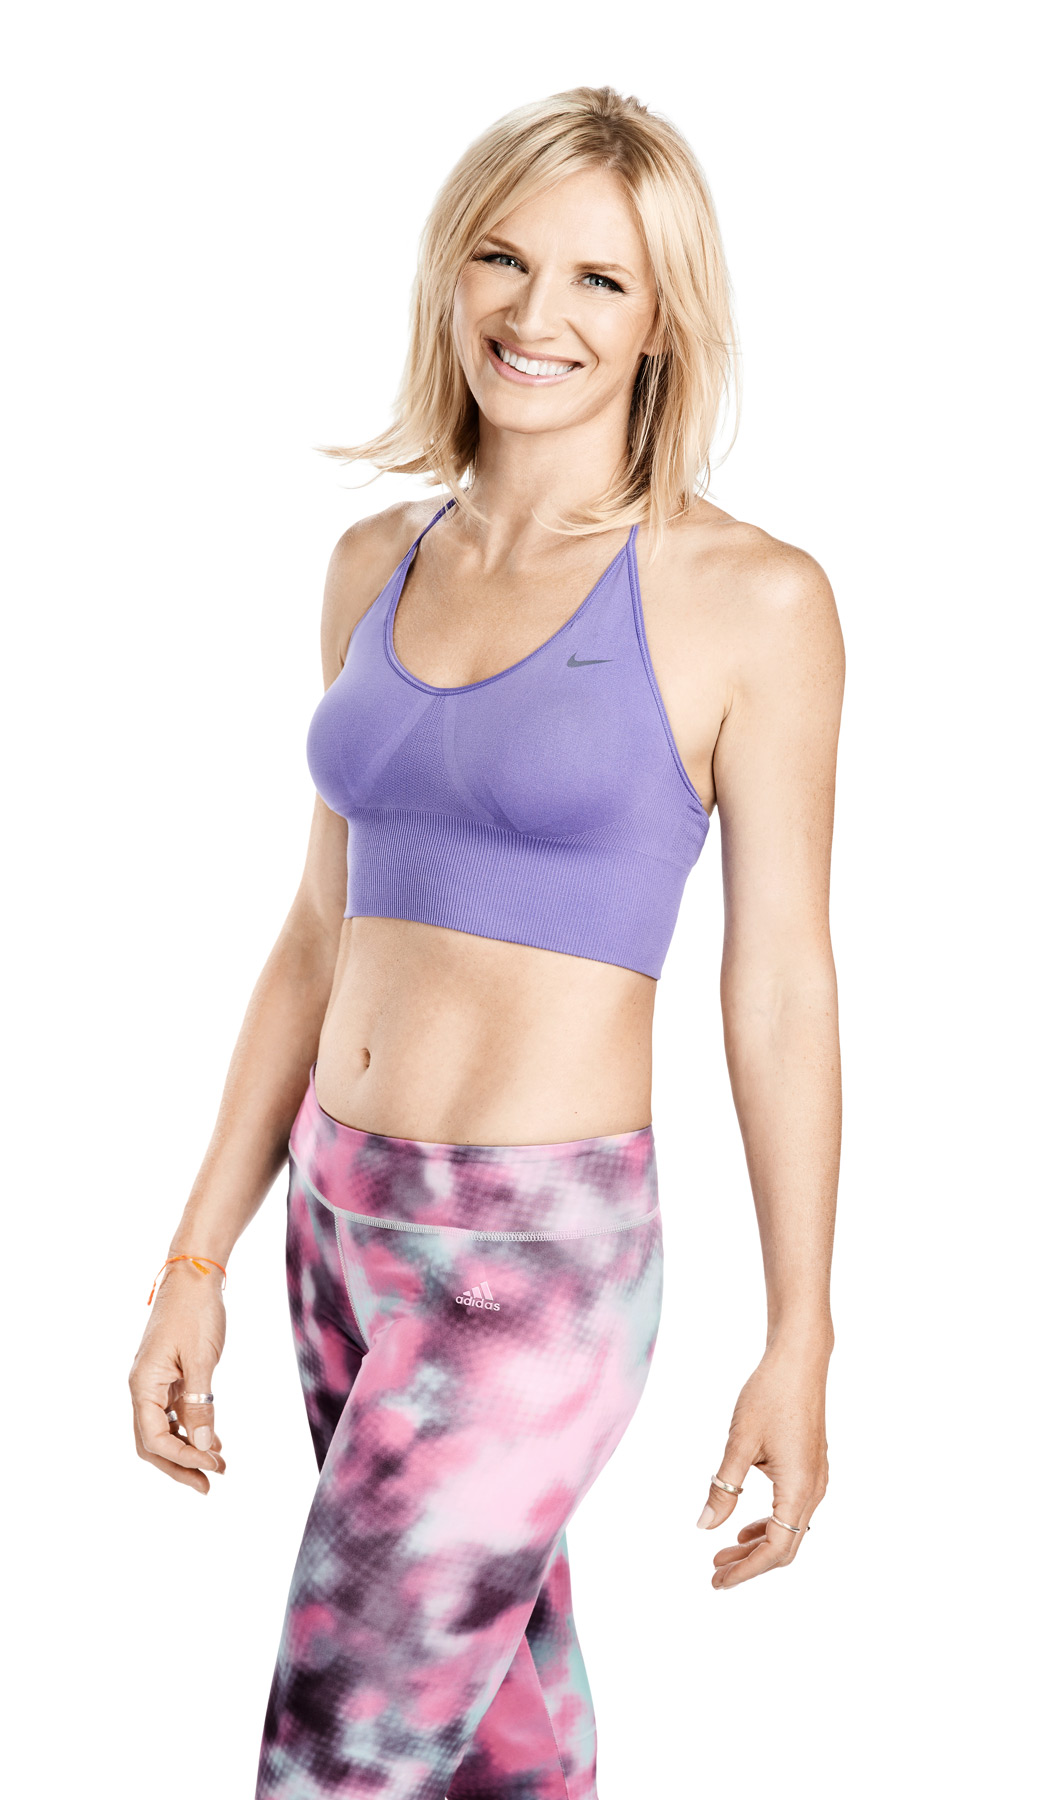 Jo Whiley in sportswear for Your Fitness